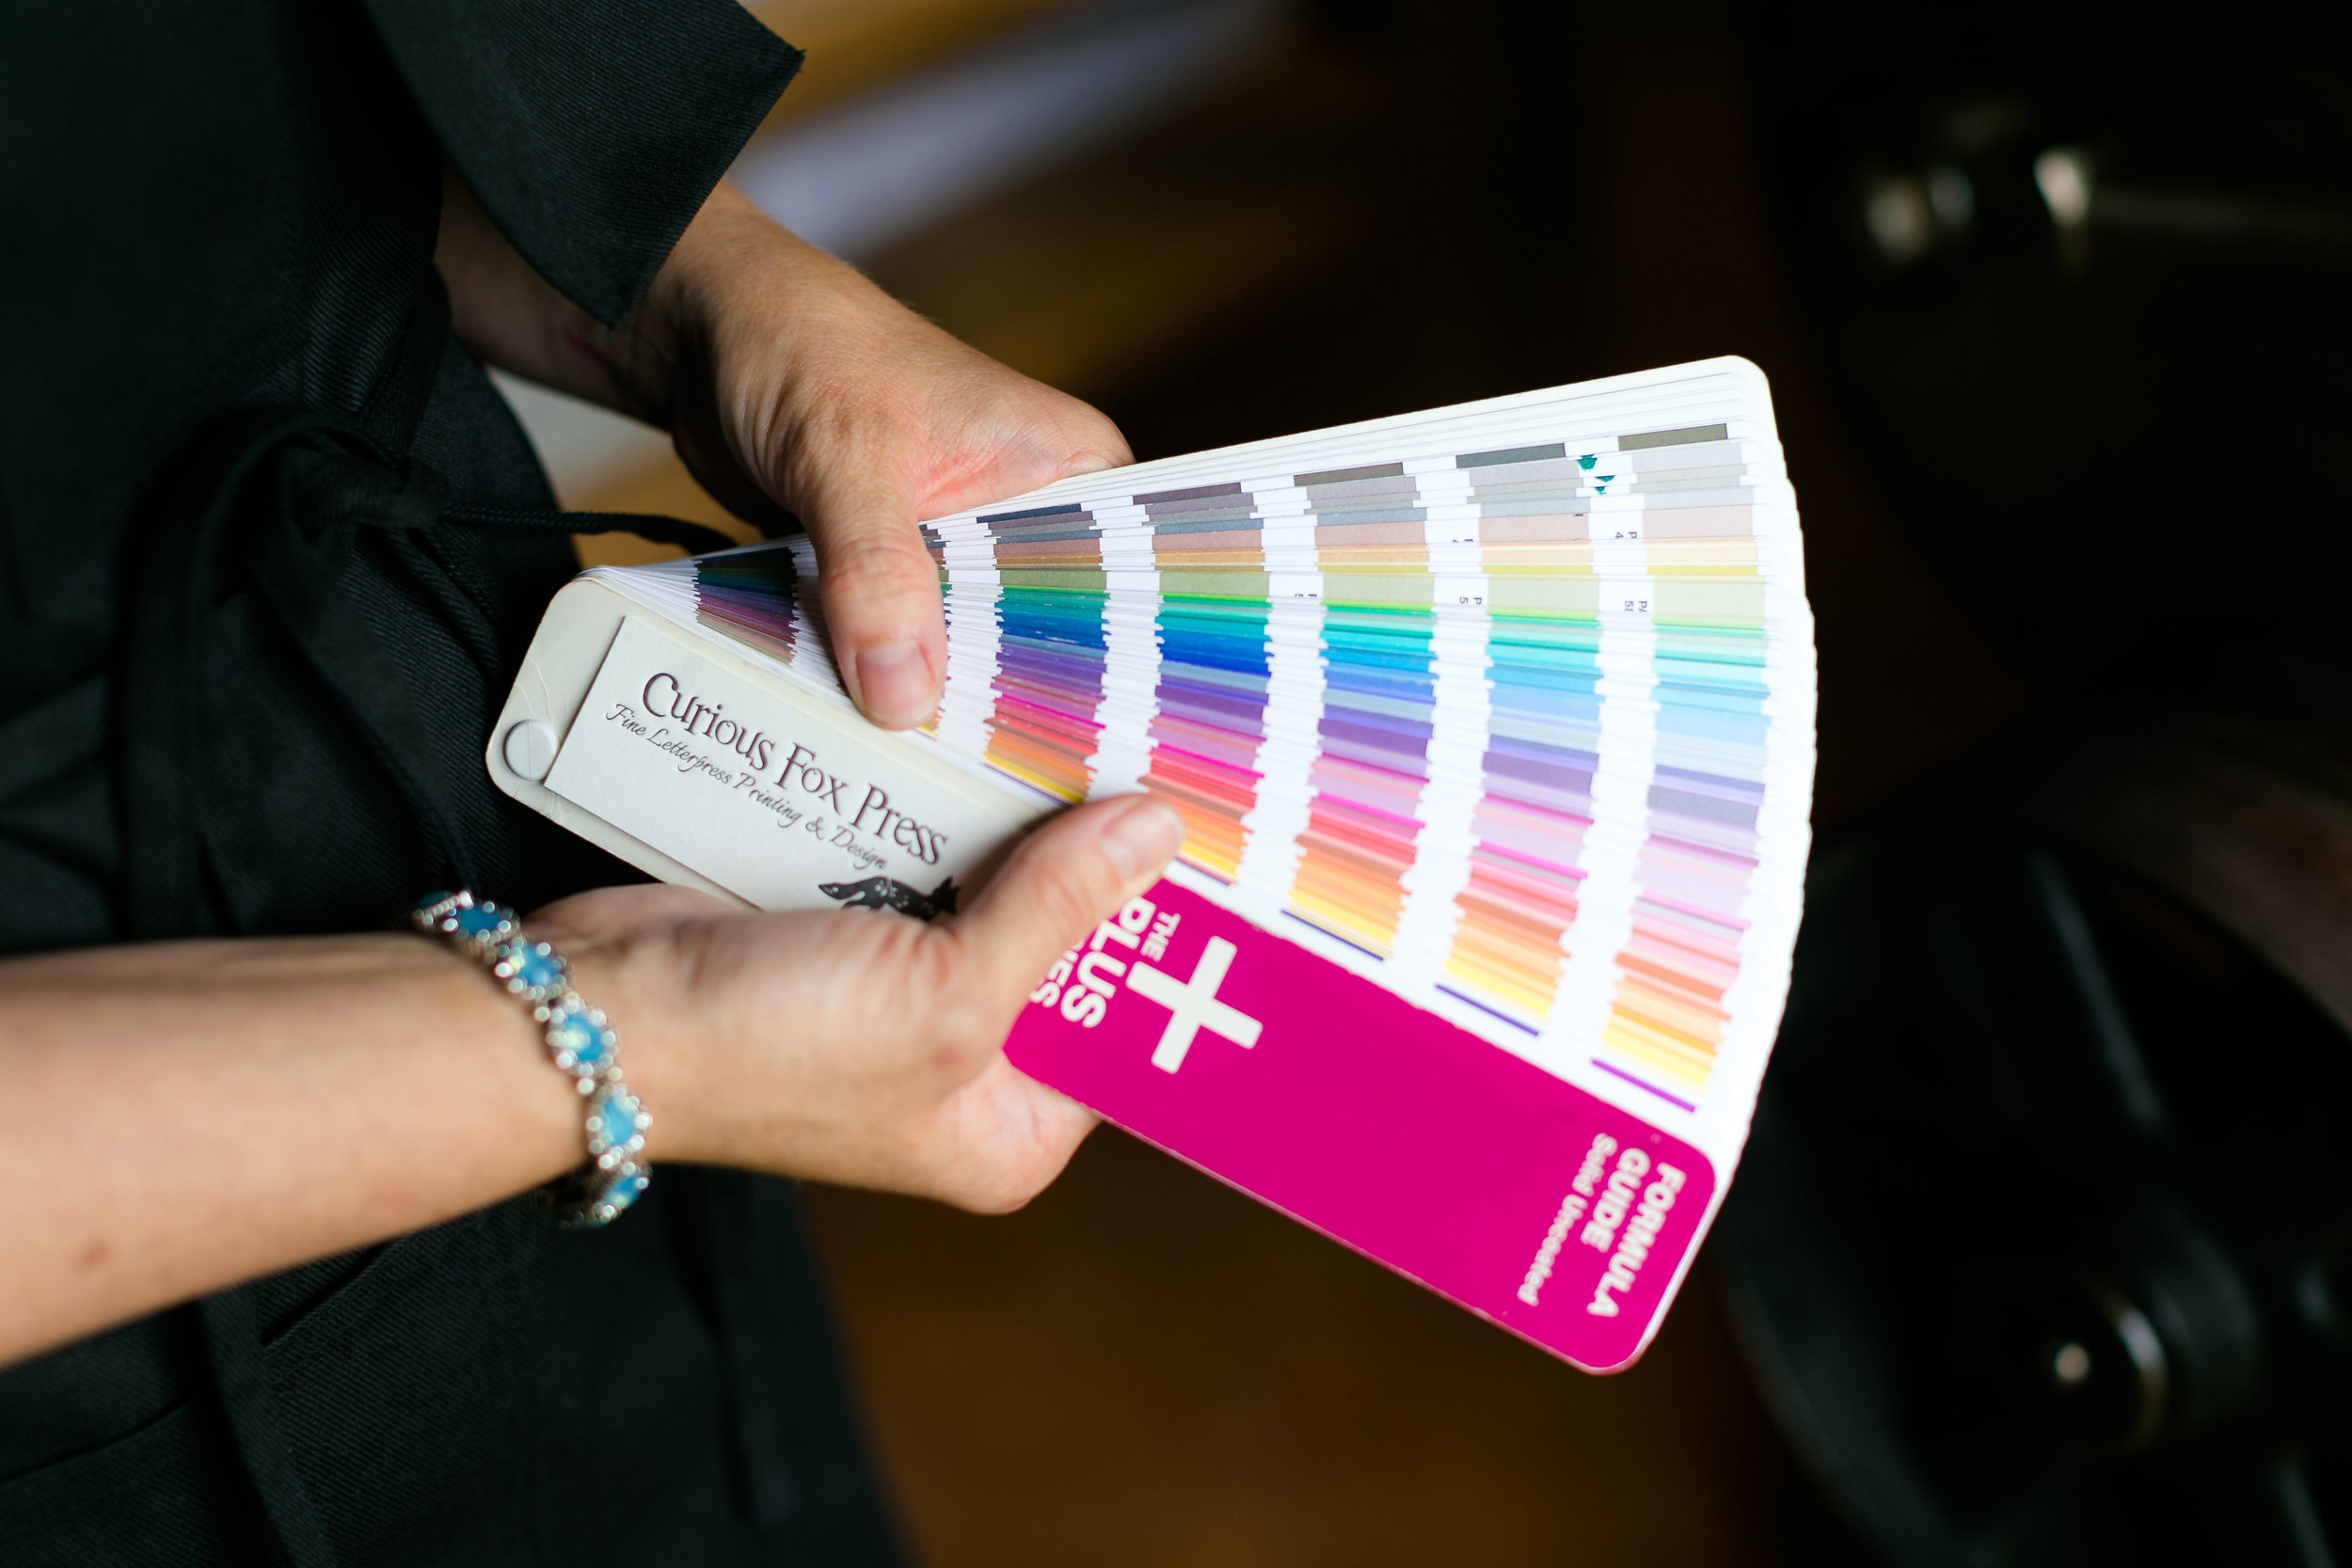 This Pantone color book is an example of the reference book that most letterpress printers will use! Each color swatch gives a formula for mixing the color correctly.  LOVE KNOT PHOTO.